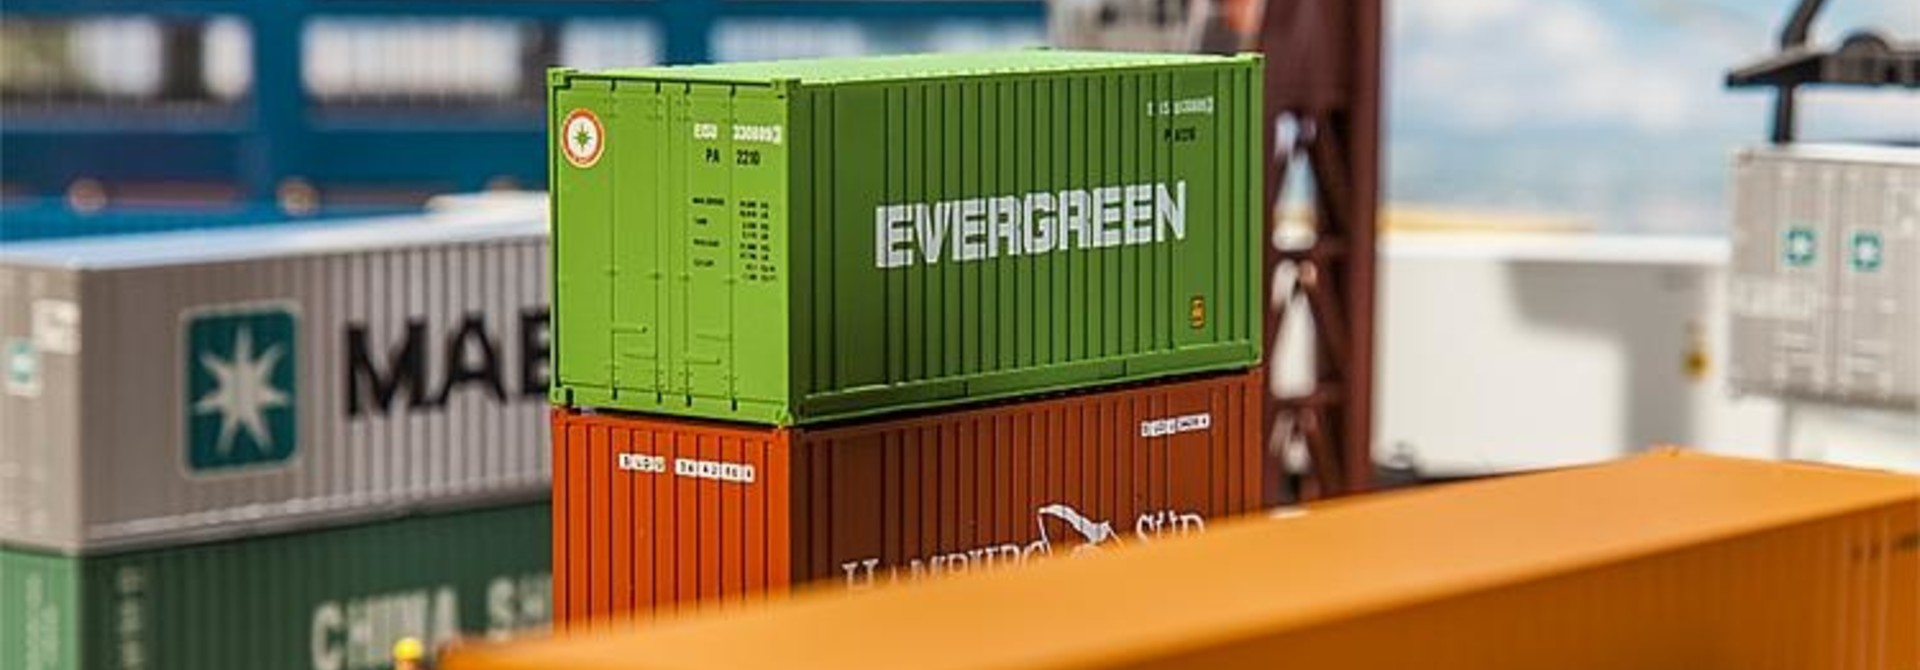 180821 20' CONTAINER EVERGREEN